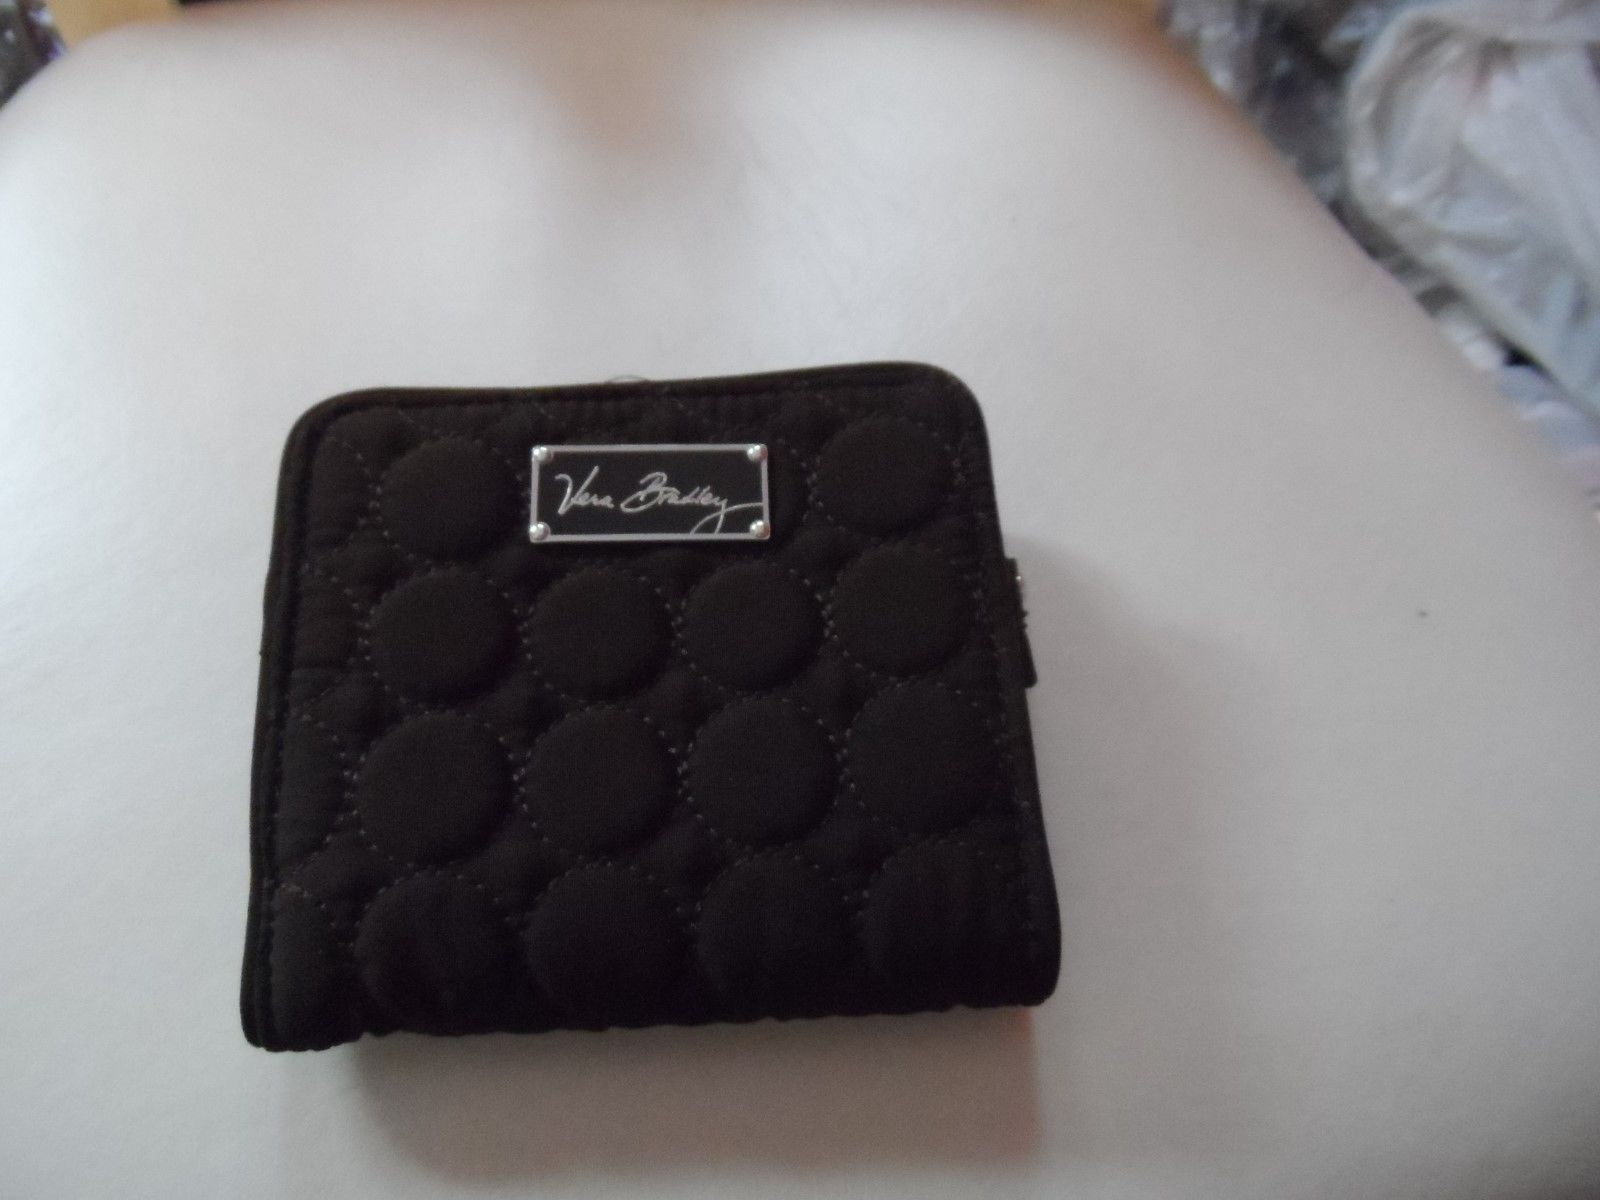 19.99$  Buy now - http://vipik.justgood.pw/vig/item.php?t=3c919ii43593 - Vera Bradley Espresso BROWN MICROFIBER ALL IN ONE WALLET with BAROQUE LINING 19.99$